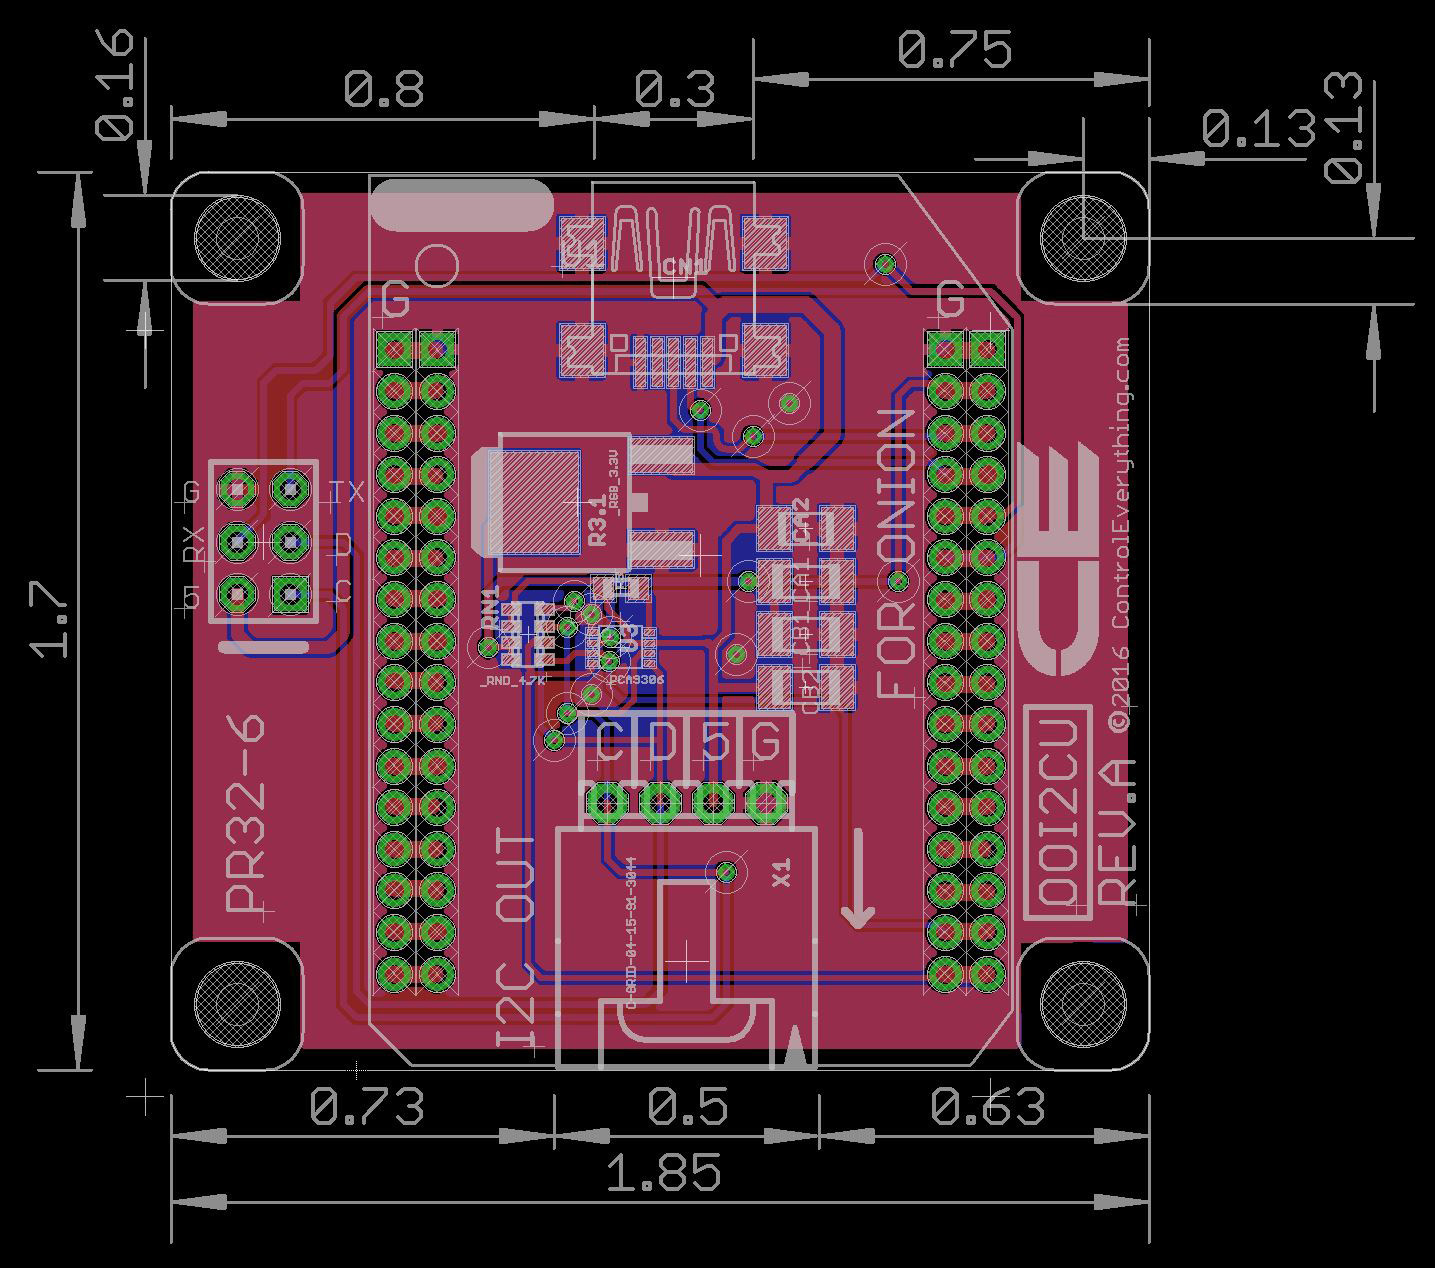 onion omega compatible i2c shield with rfid receiver and